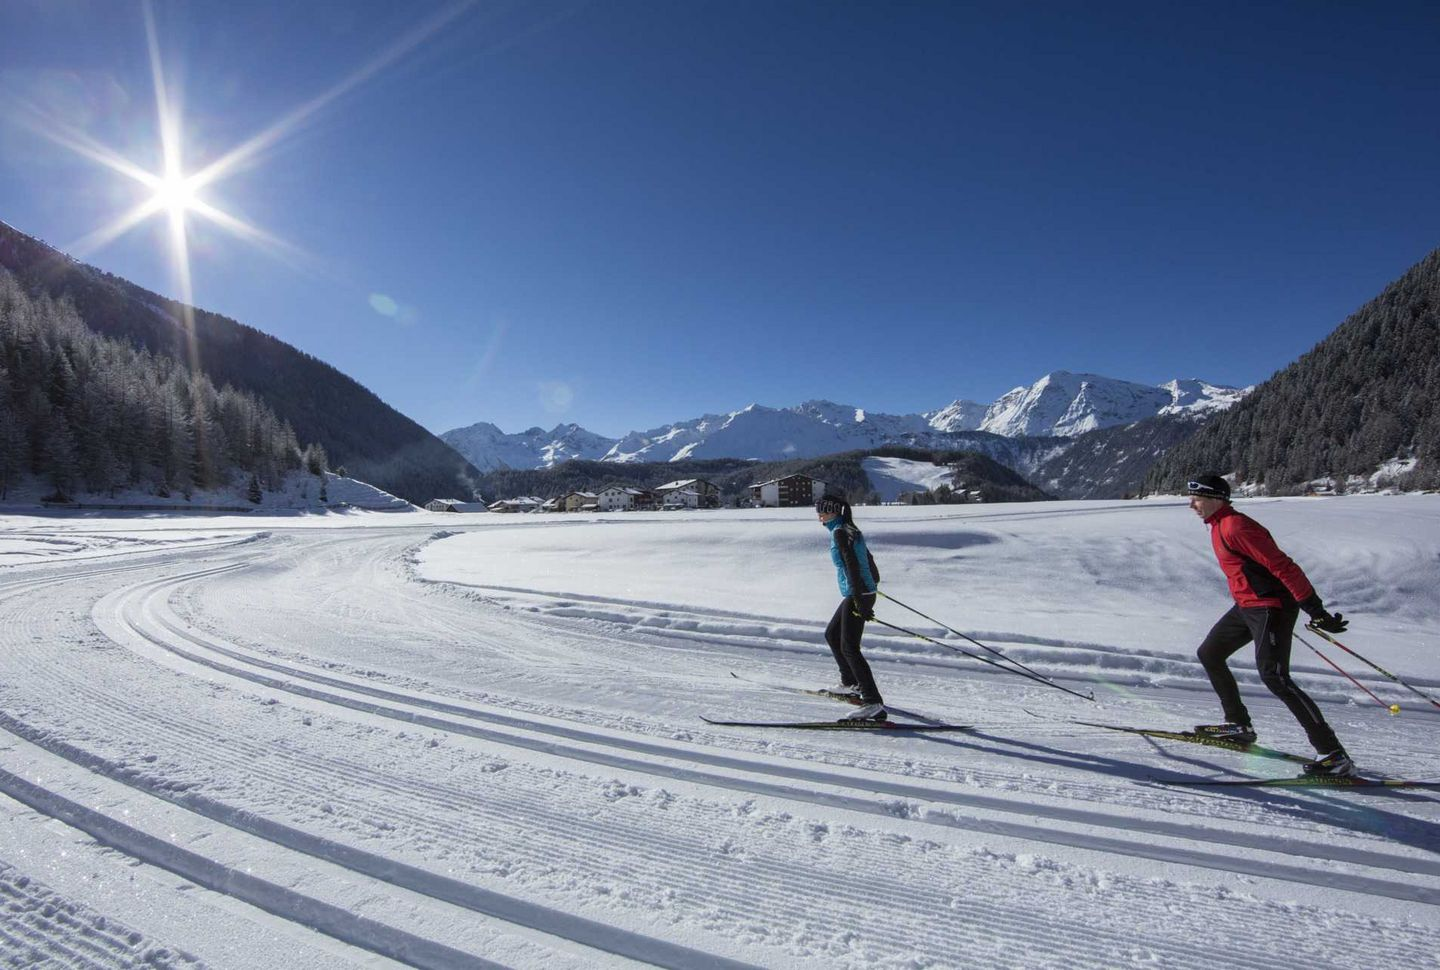 Tobogganing Ötztal :: Cross-country skiing & winter hiking in the Ötztal